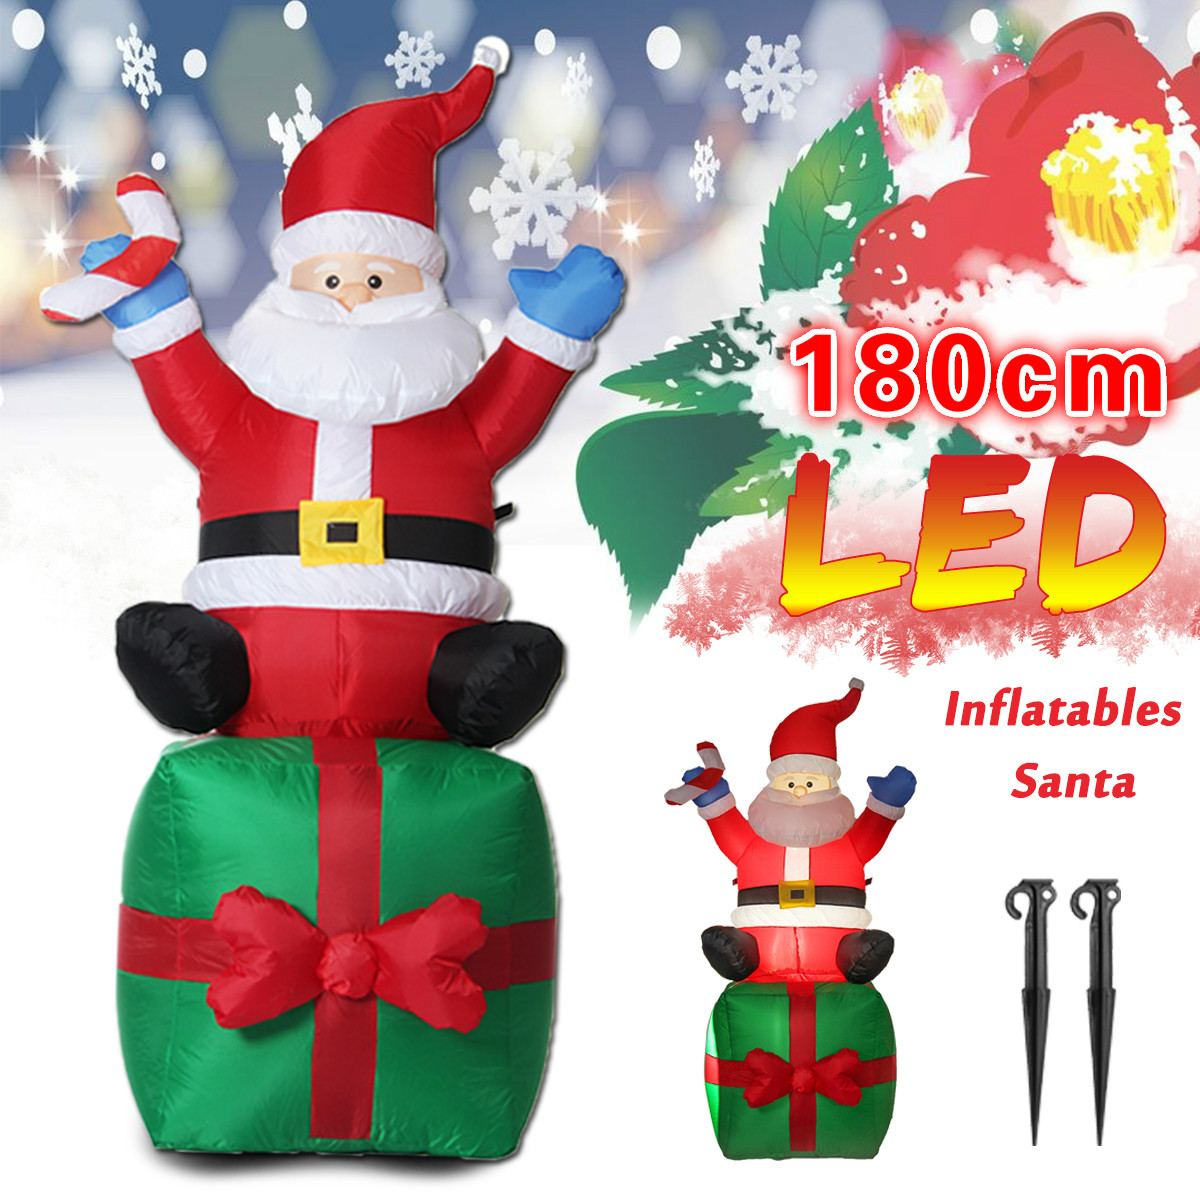 1.8M LED Inflatable Christmas Santa Claus Ornament Christmas Decorations Outdoor for Home navidad New Year Party Decor Xmas Gift